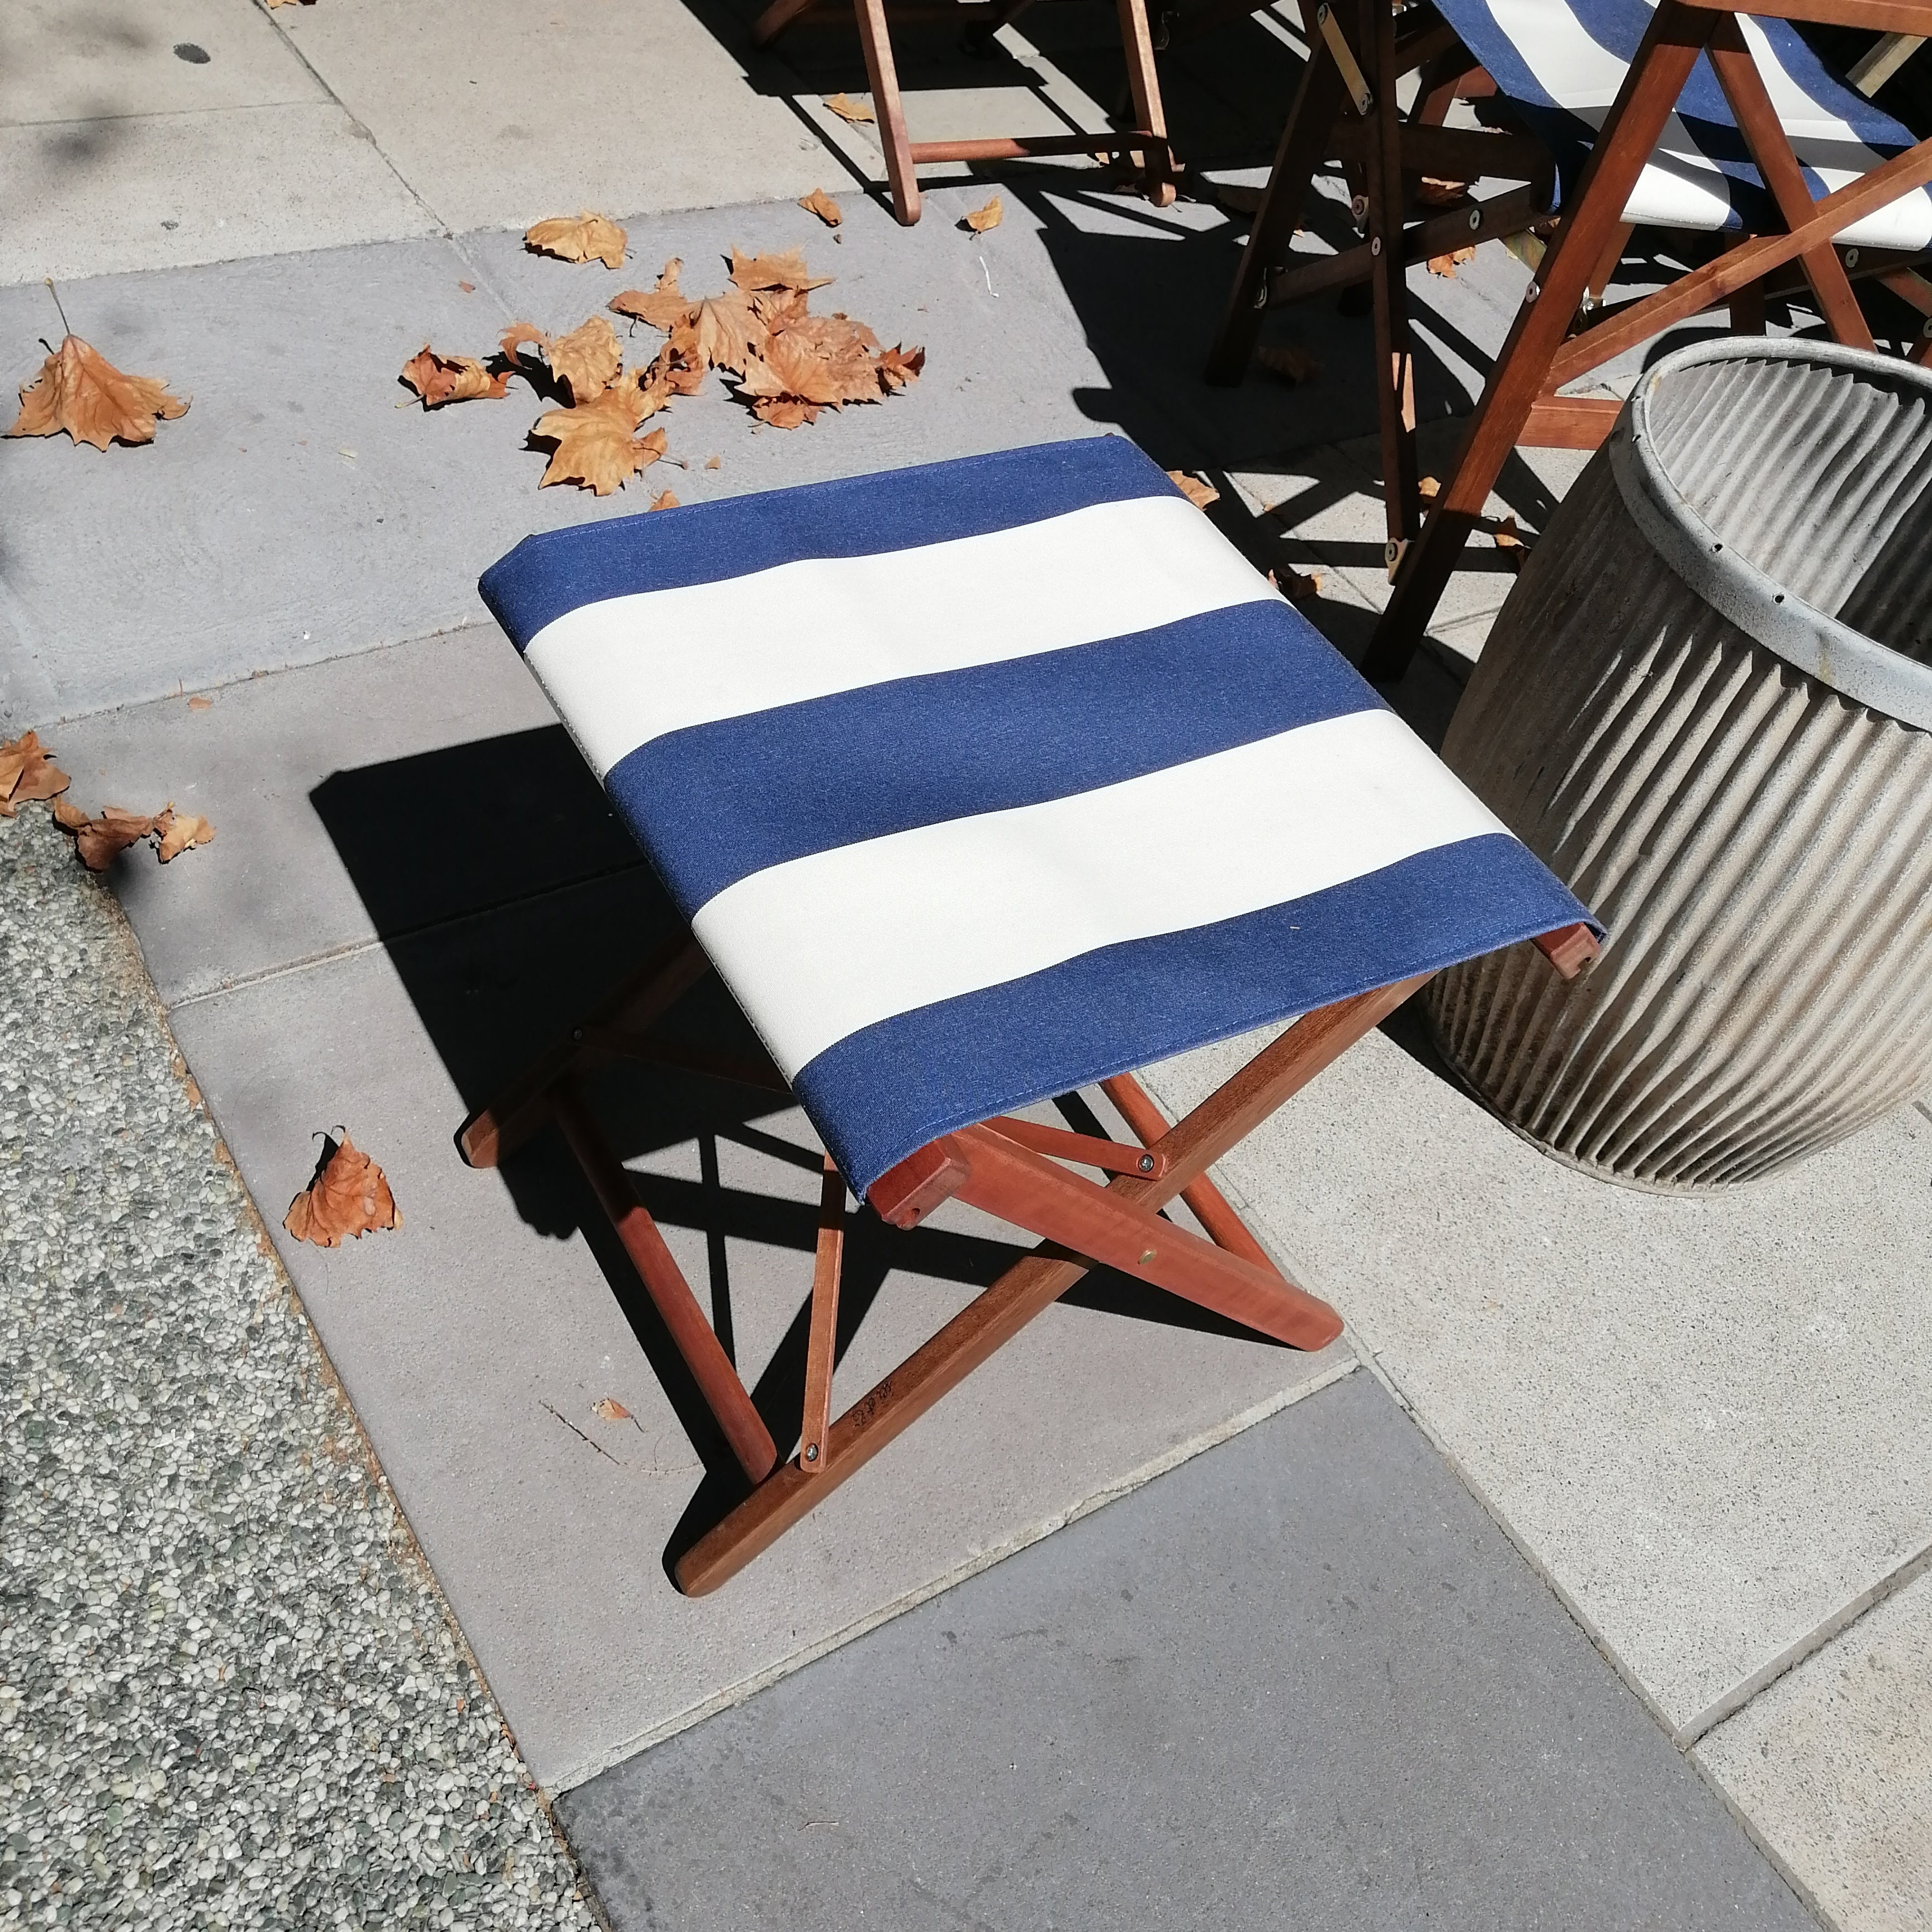 Classic Directors Chair and Footstool SET in Les Toiles du Soleil - NAVY AND WHITE BROAD STRIPE